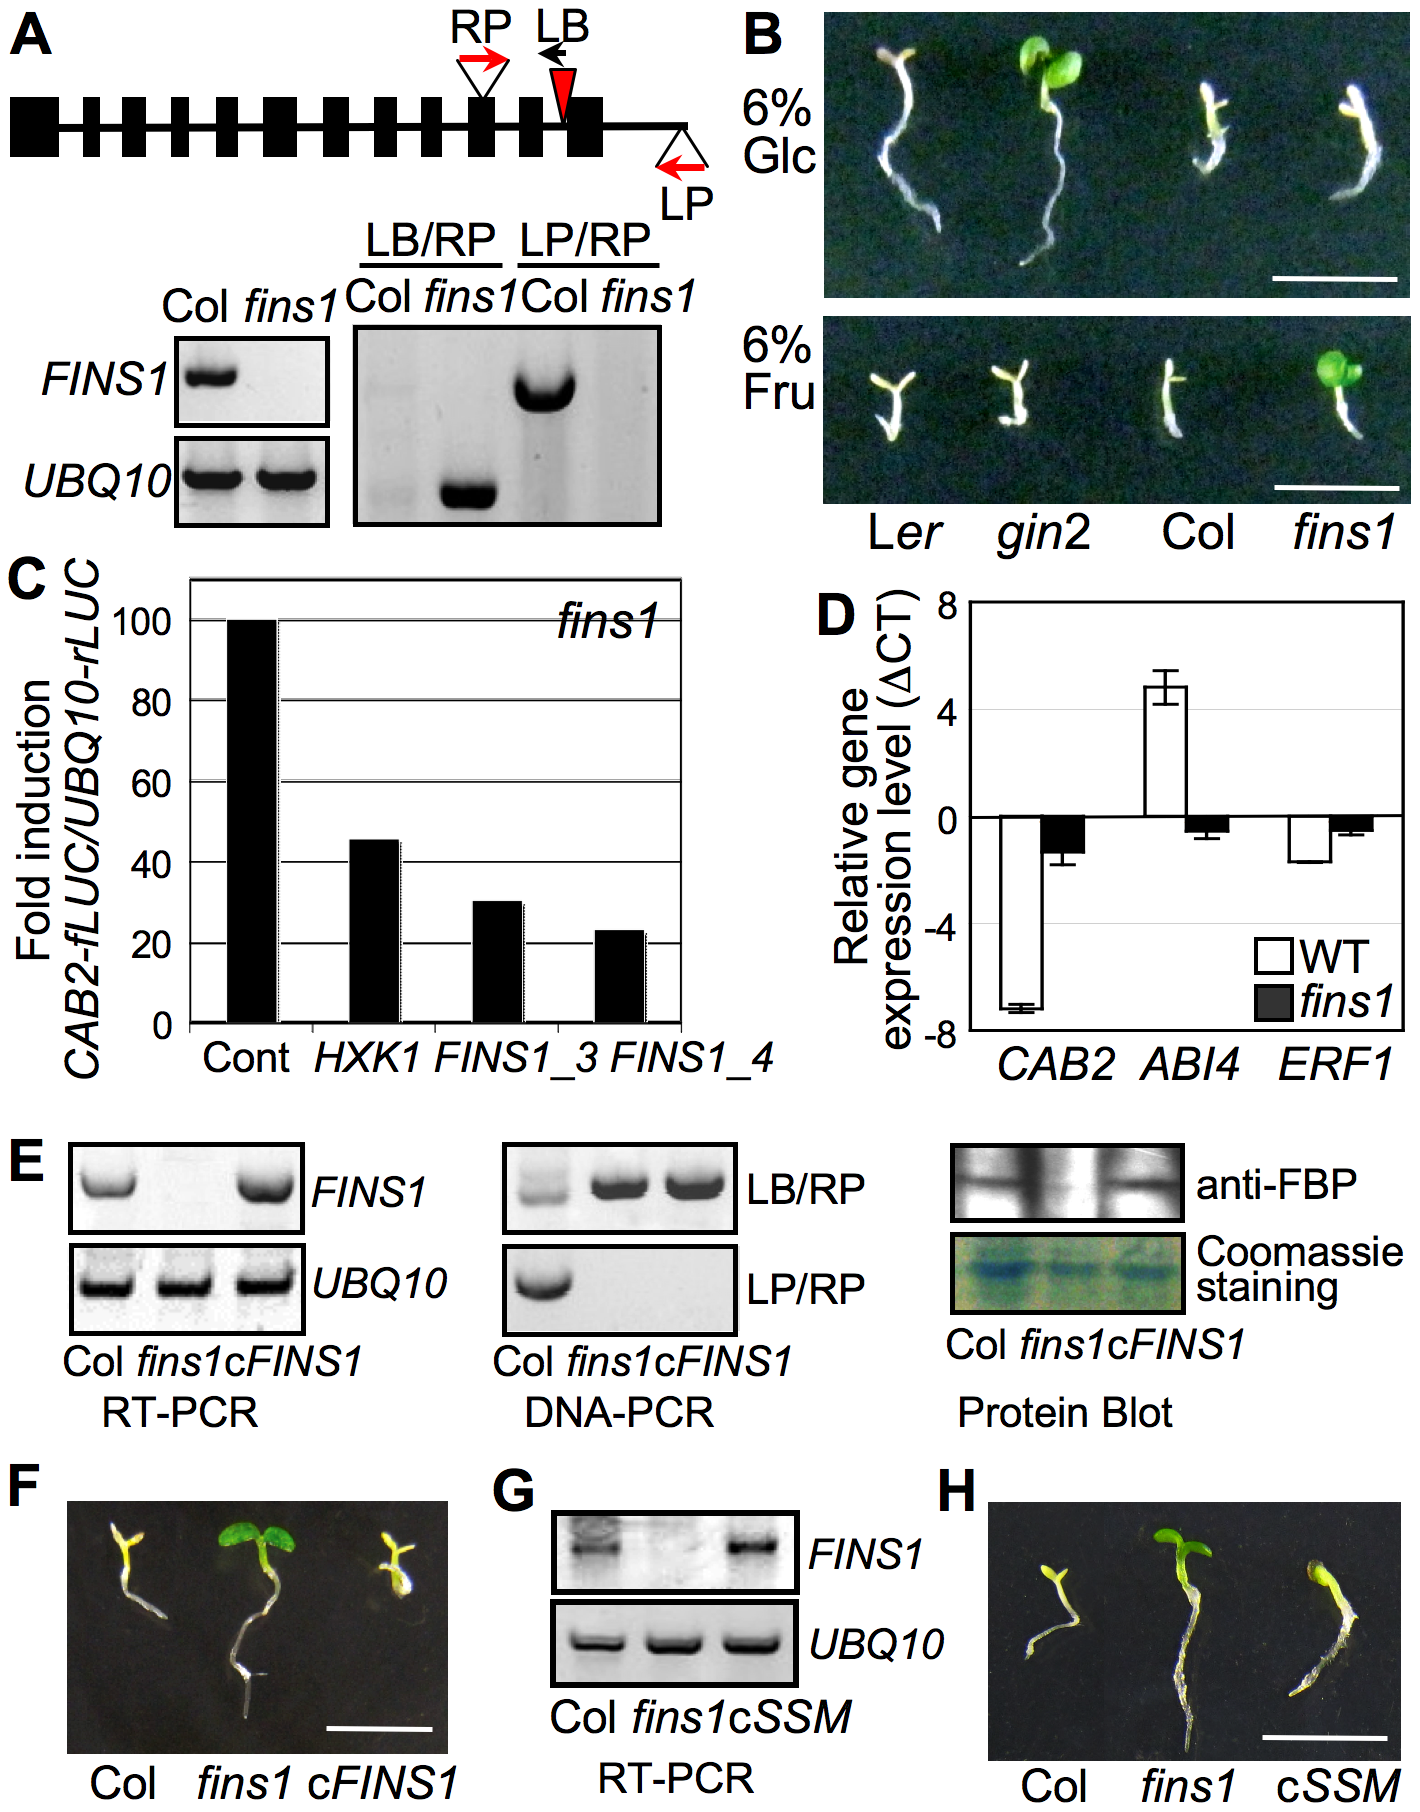 FINS1/FBP in fructose signaling.